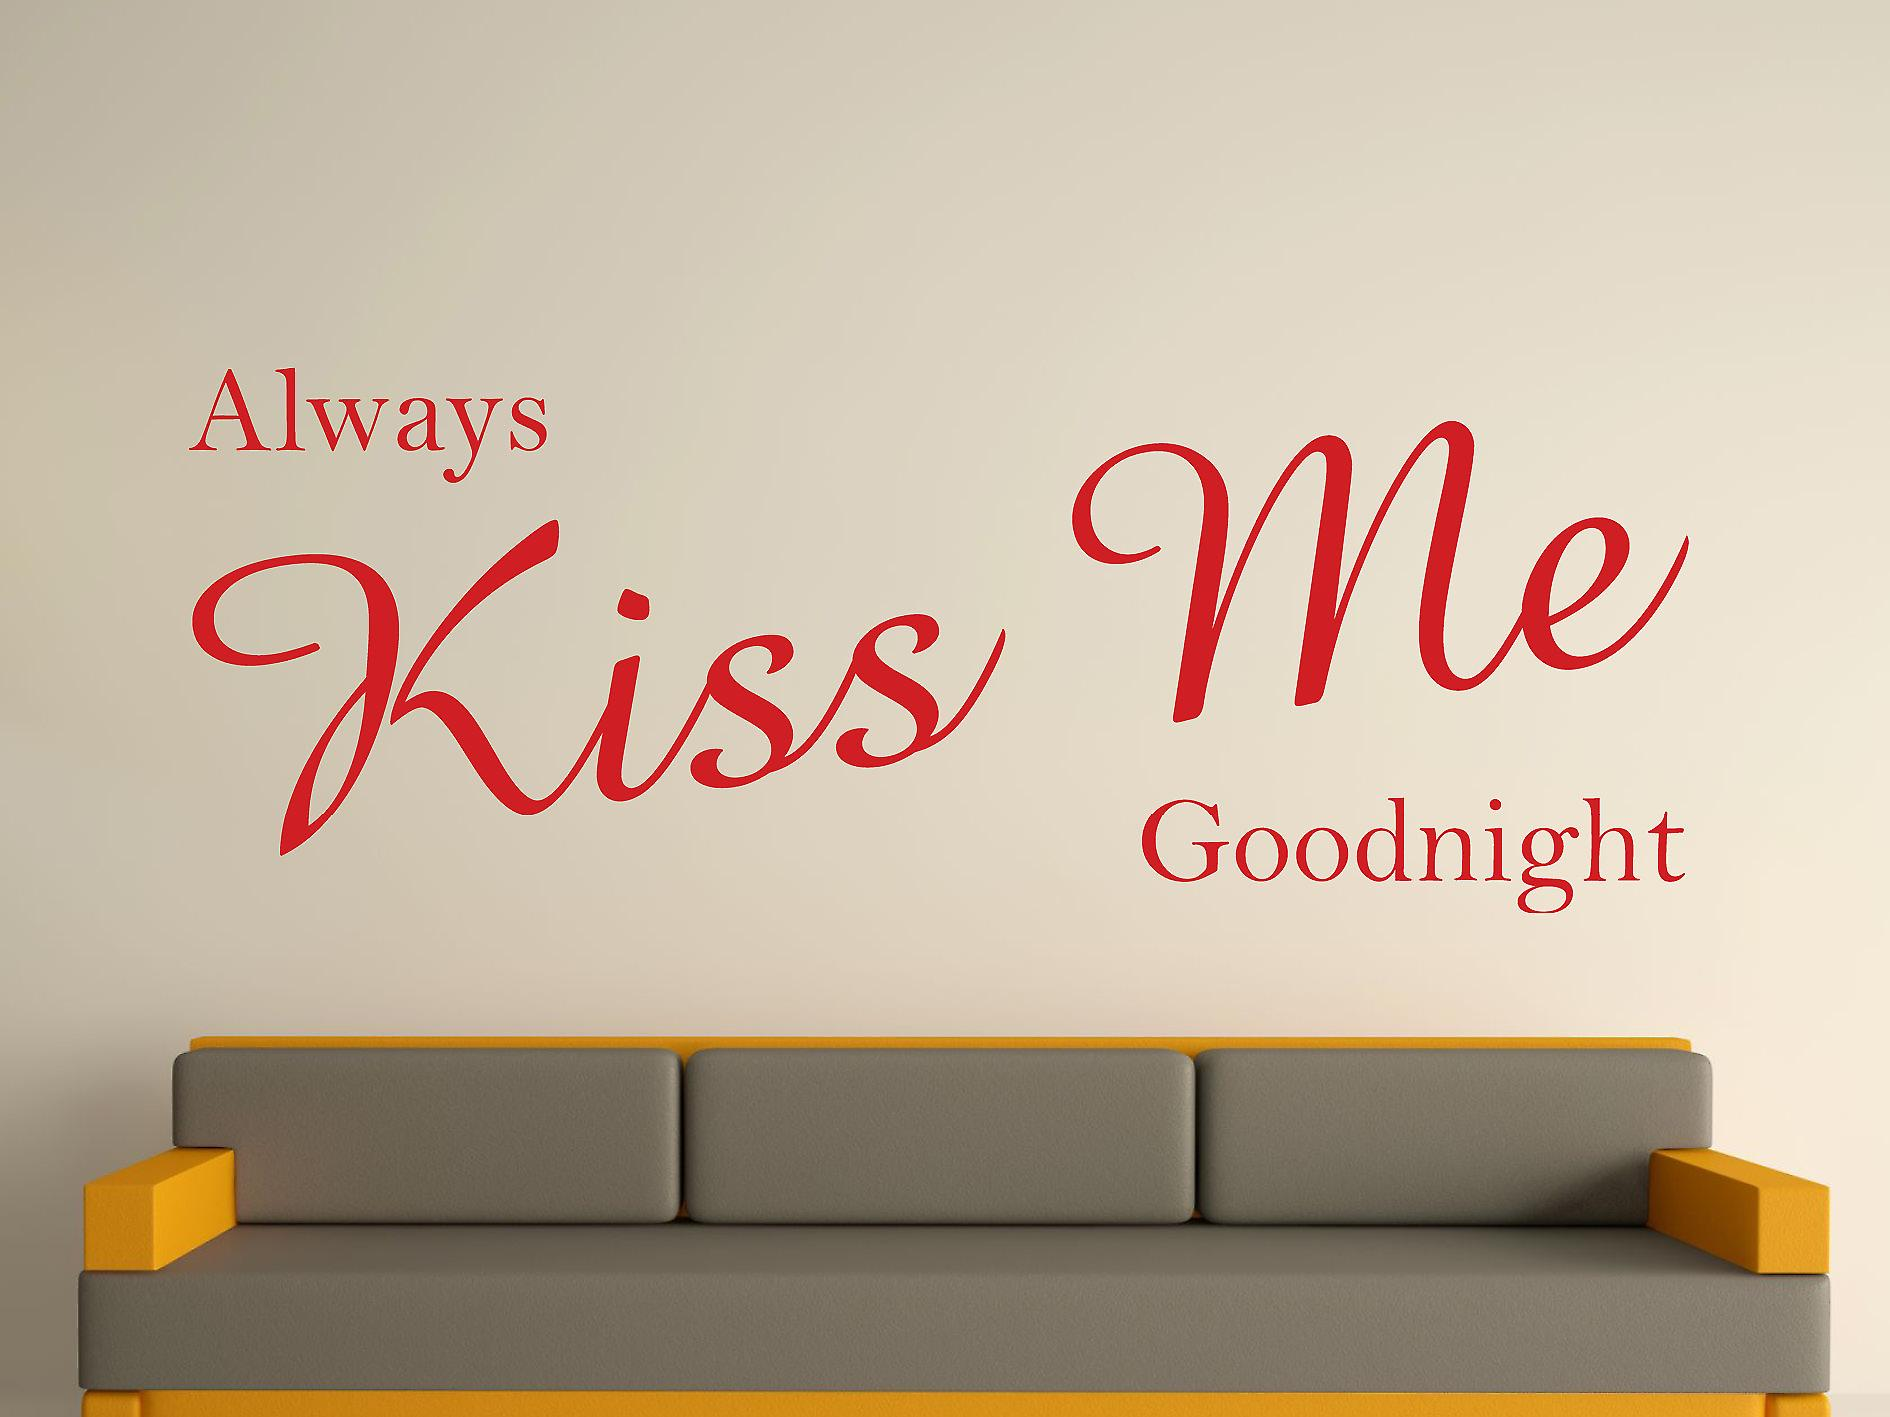 Always Kiss Me Goodnight Wall Art Sticker - Deep Red